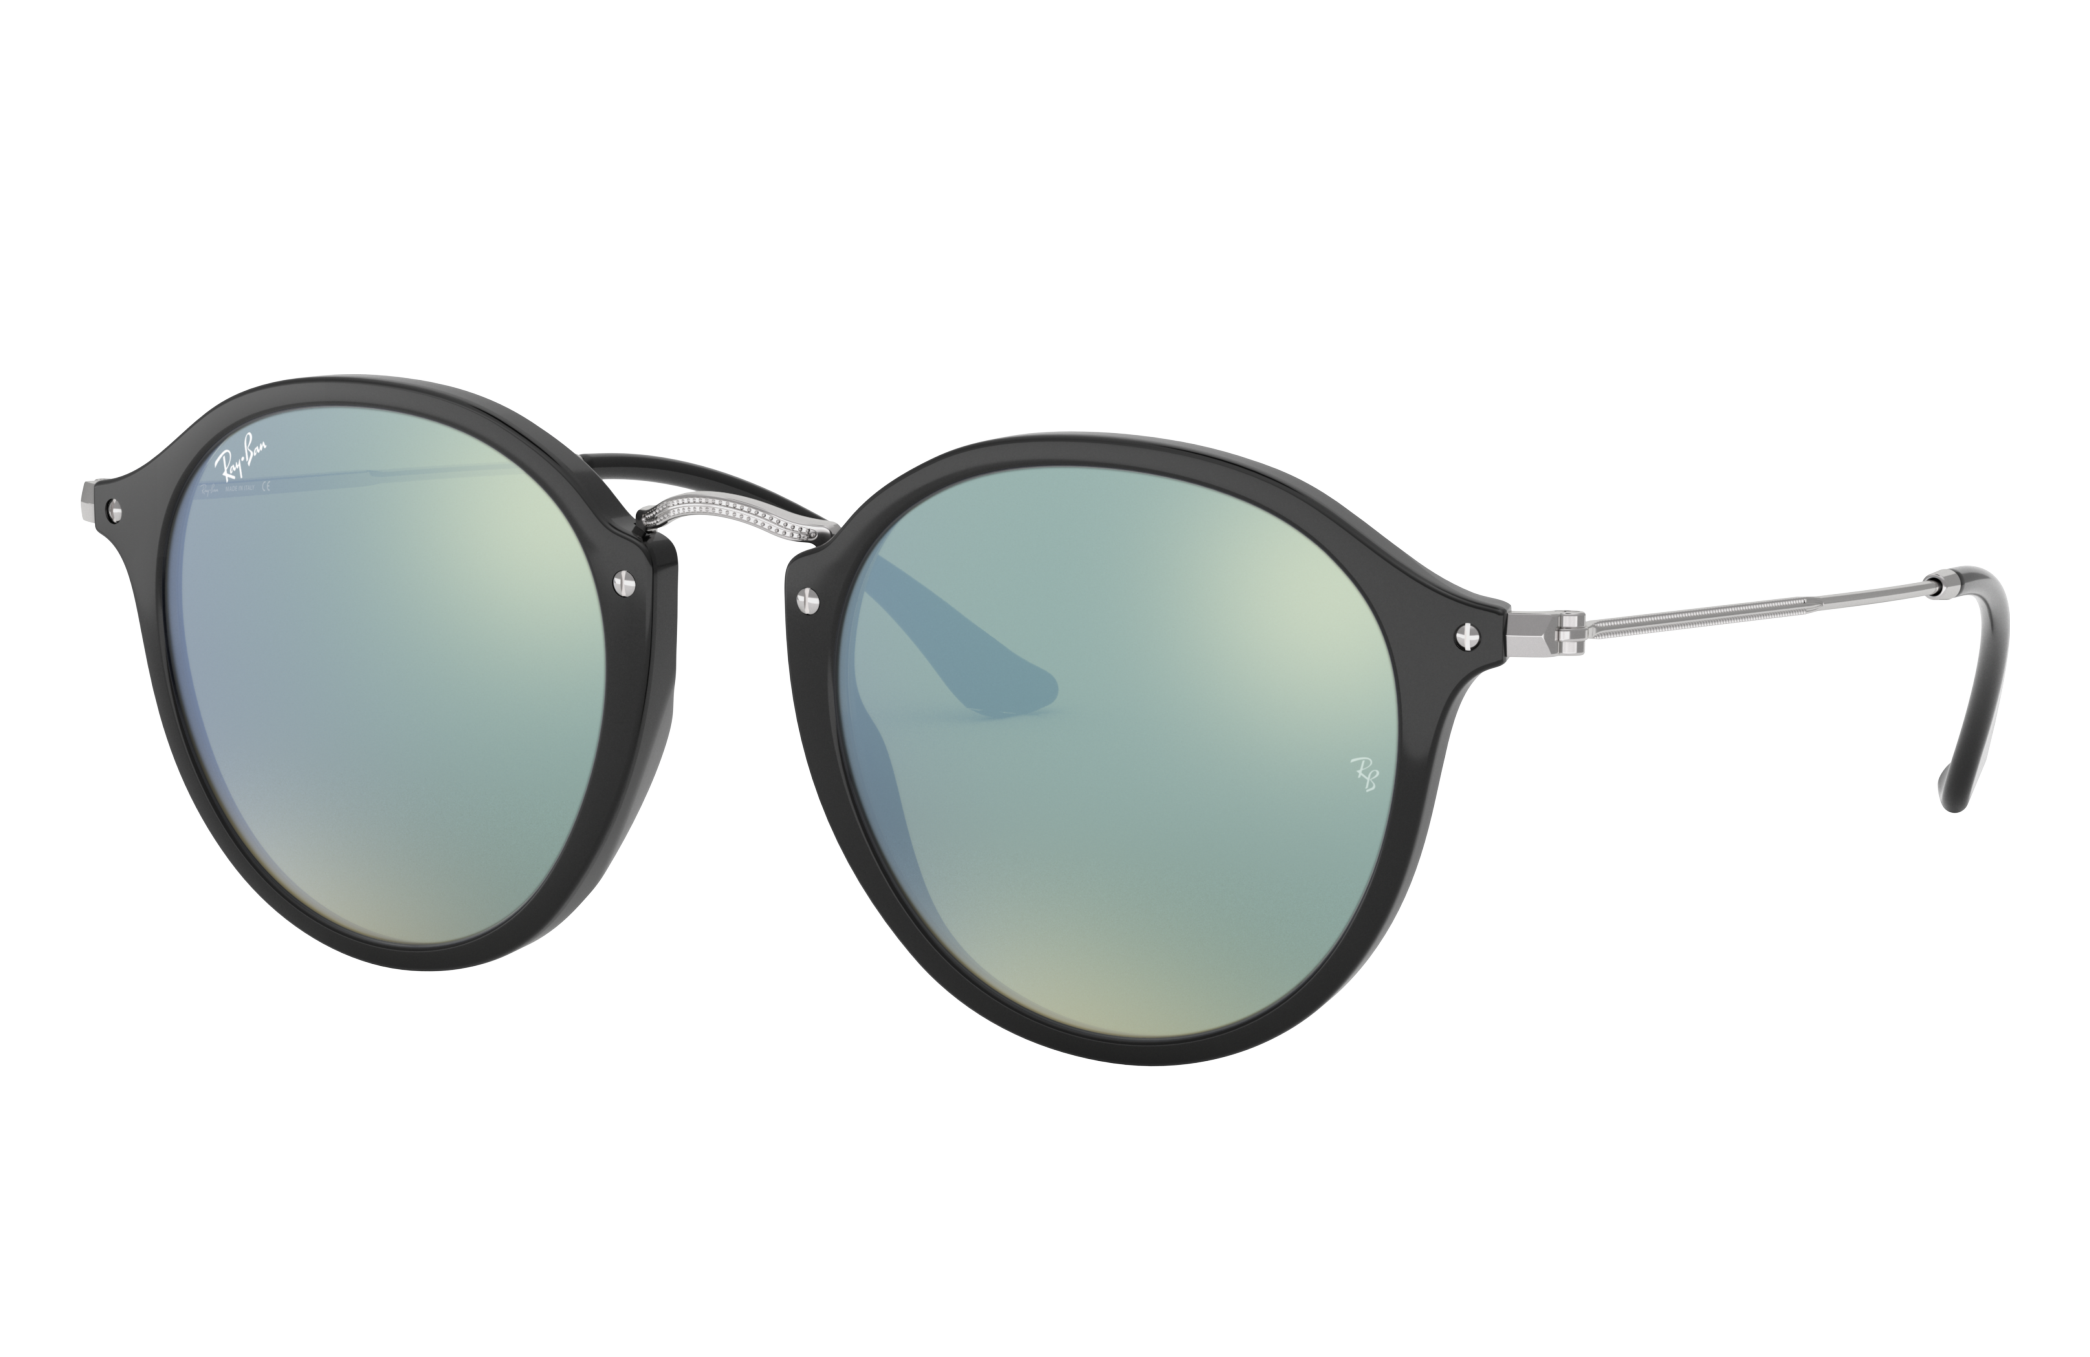 Ray-Ban Round Fleck @collection Silver, Gray Lenses - RB2447